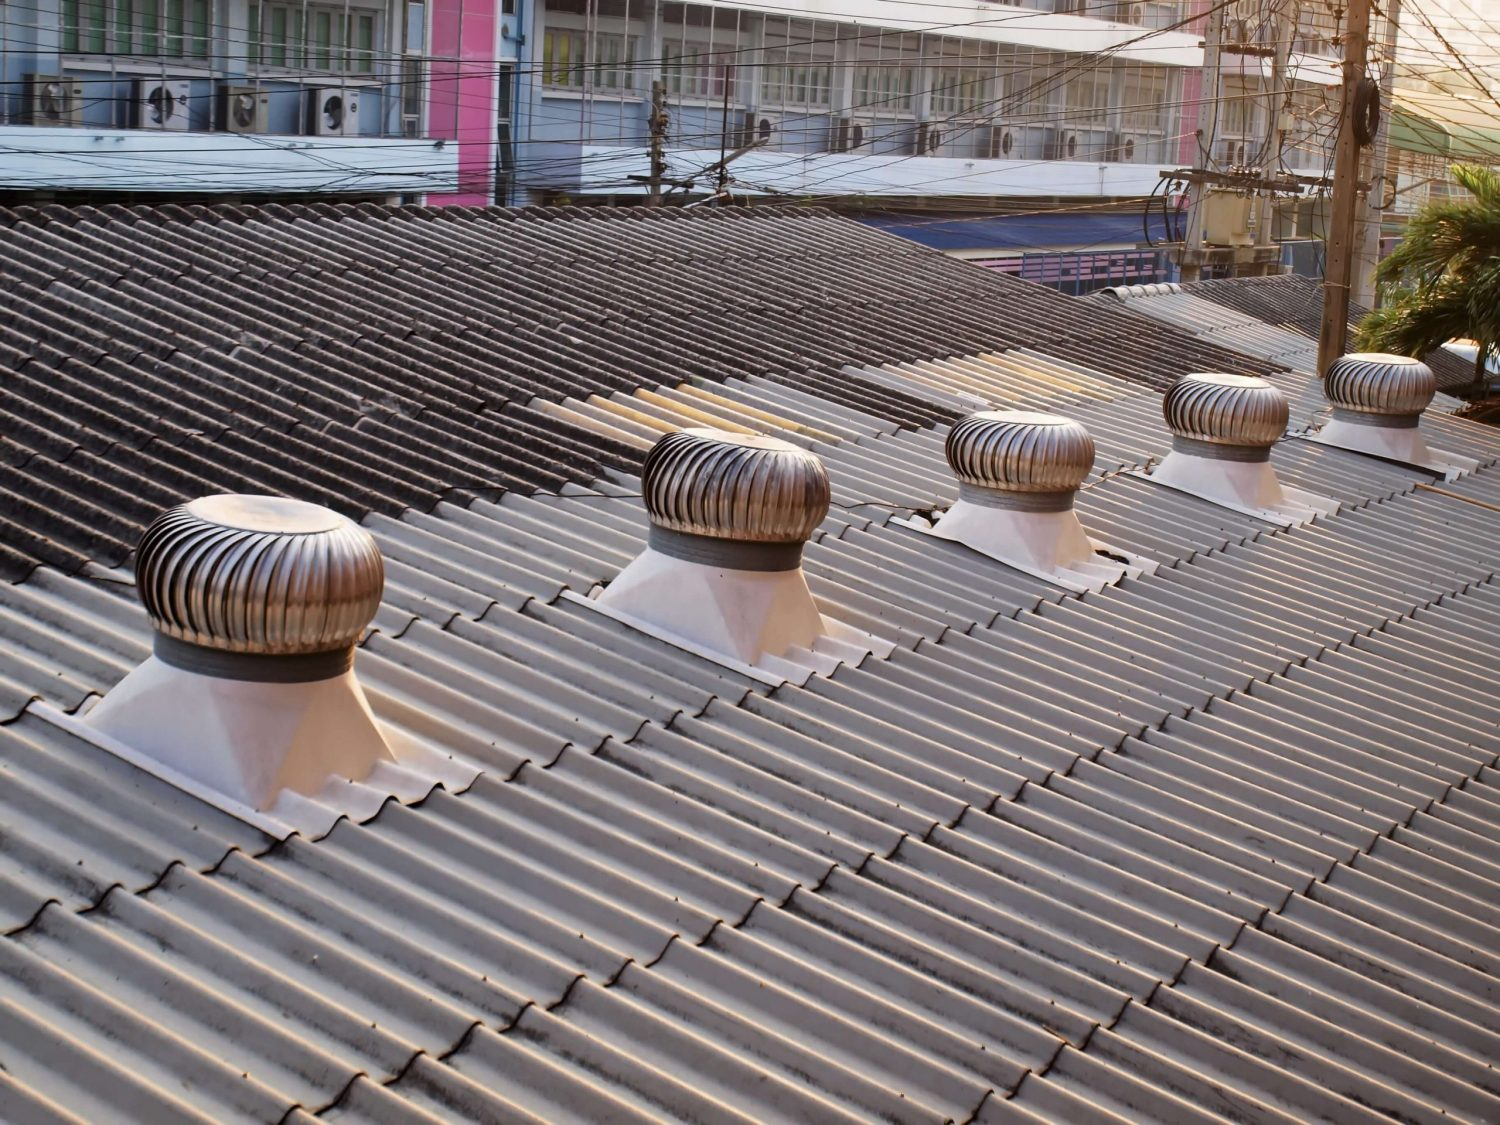 Whirlybirds Commercial ventilation system of commercial shop.